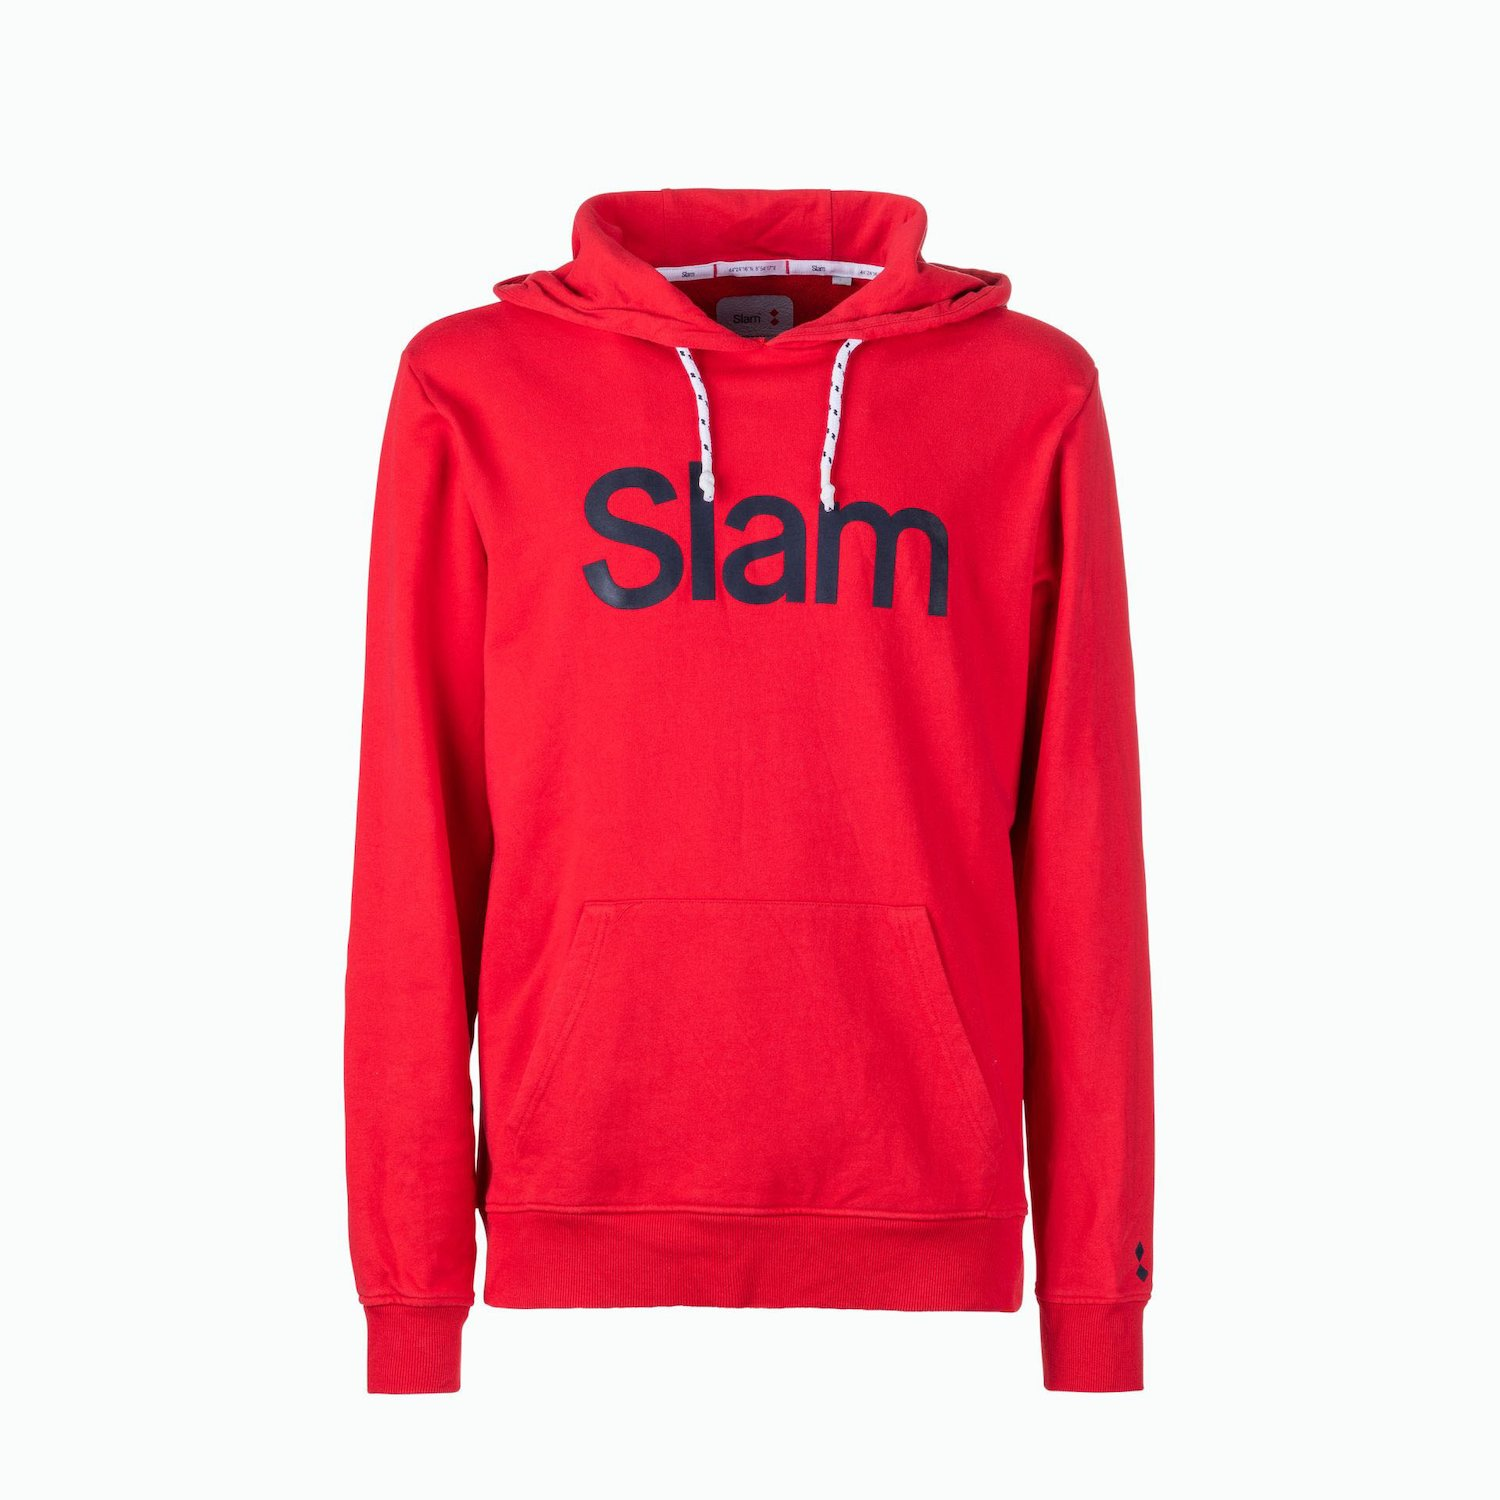 C91 Sweatshirt - Slam Red